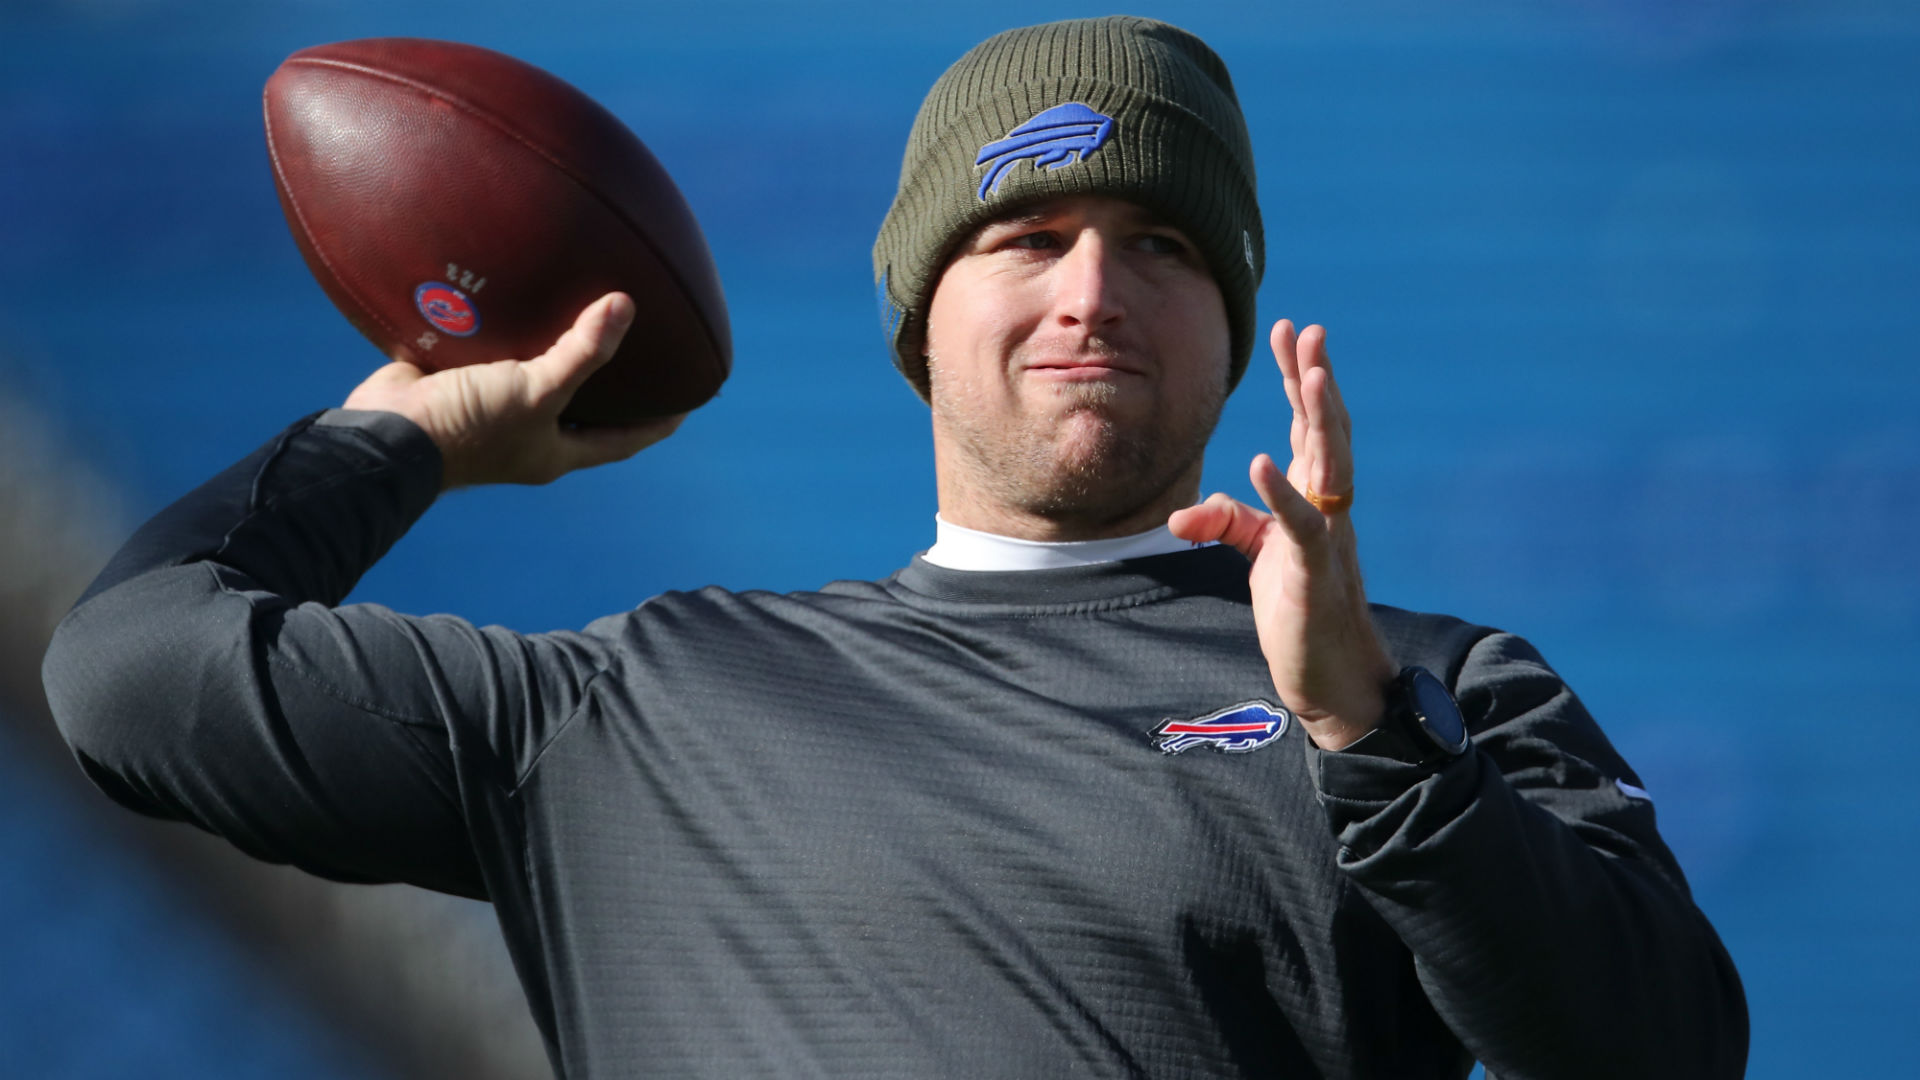 Bills coach: QB Allen will regain starting job when healthy